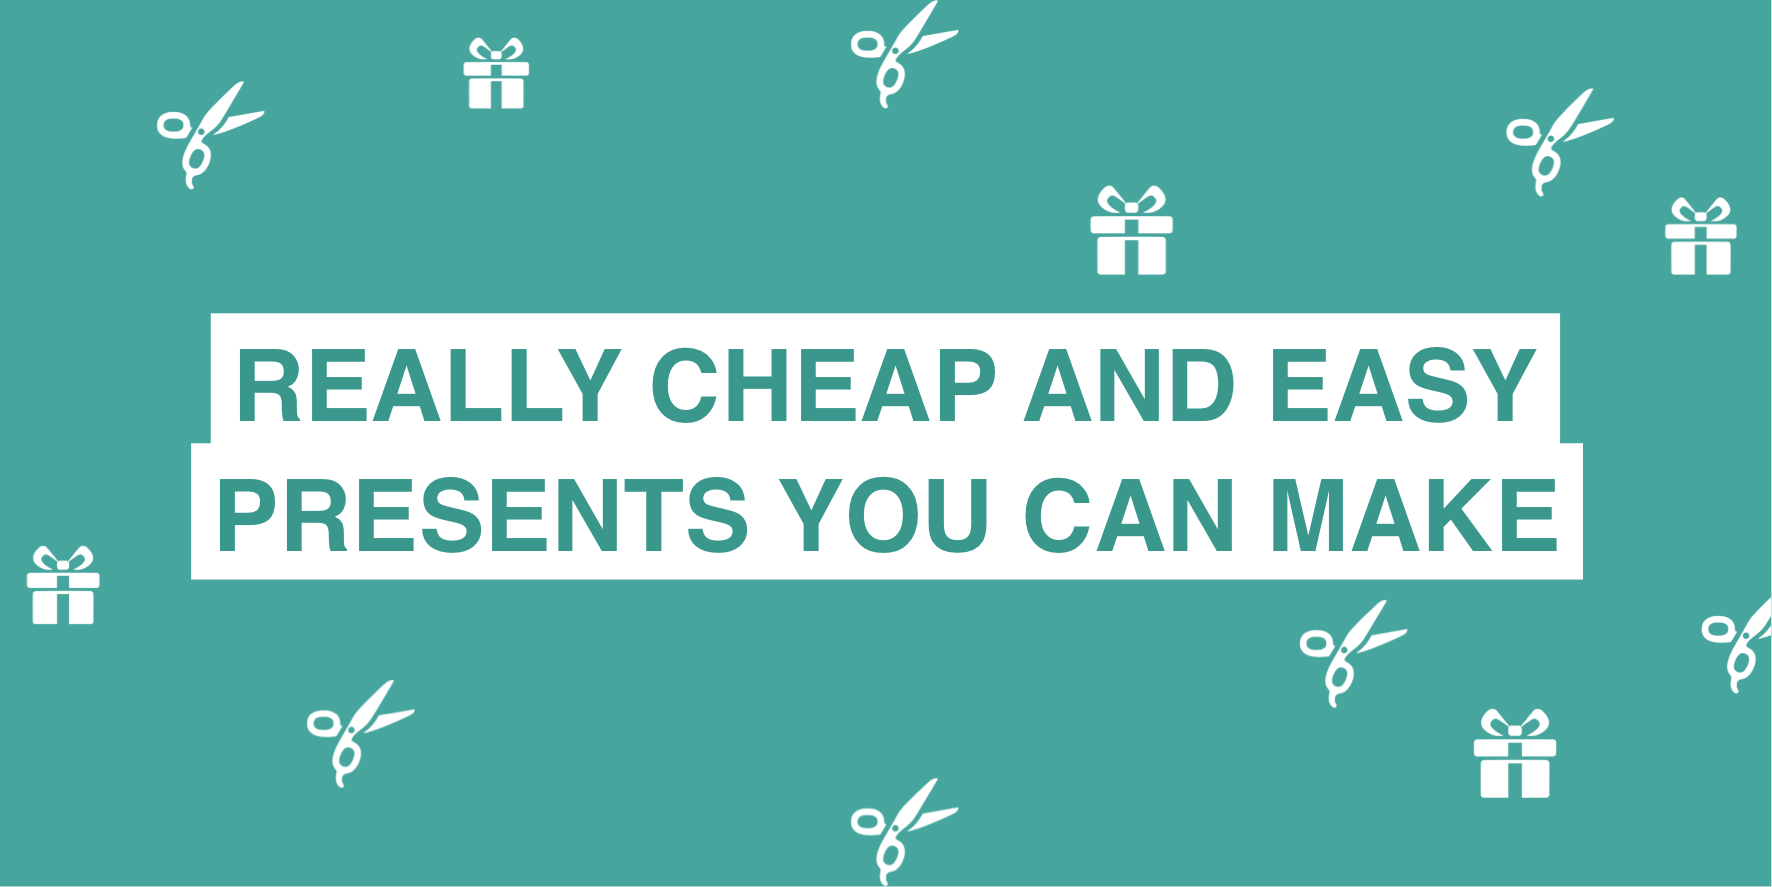 Really cheap and easy presents you can make